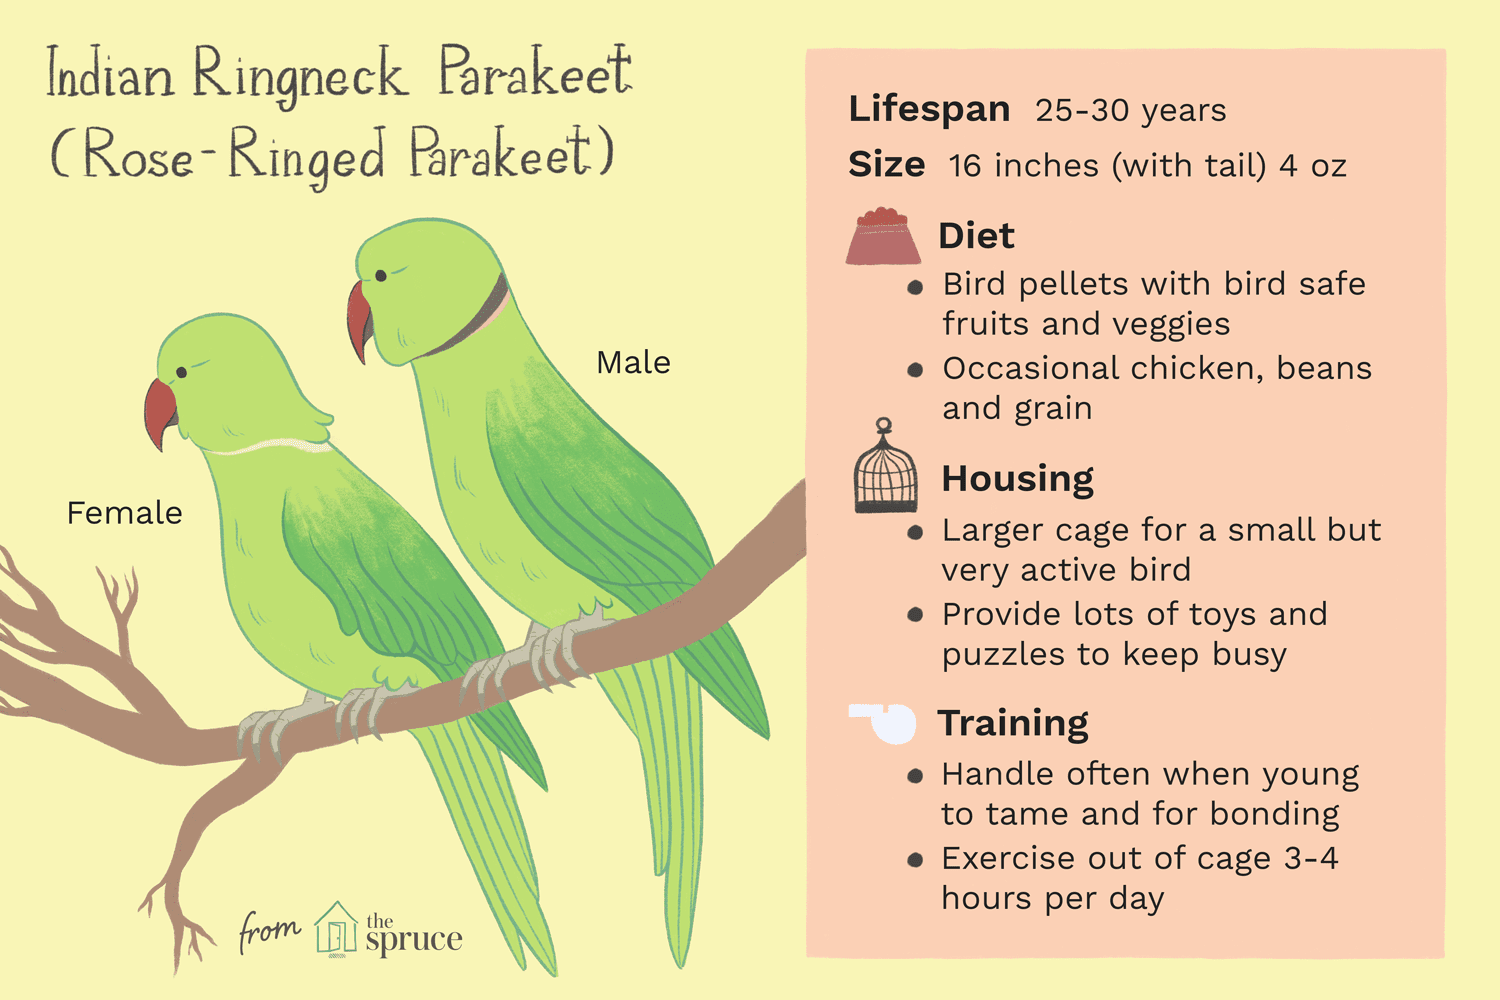 indian ringneck parakeet (rose-ringed parakeet) as pets